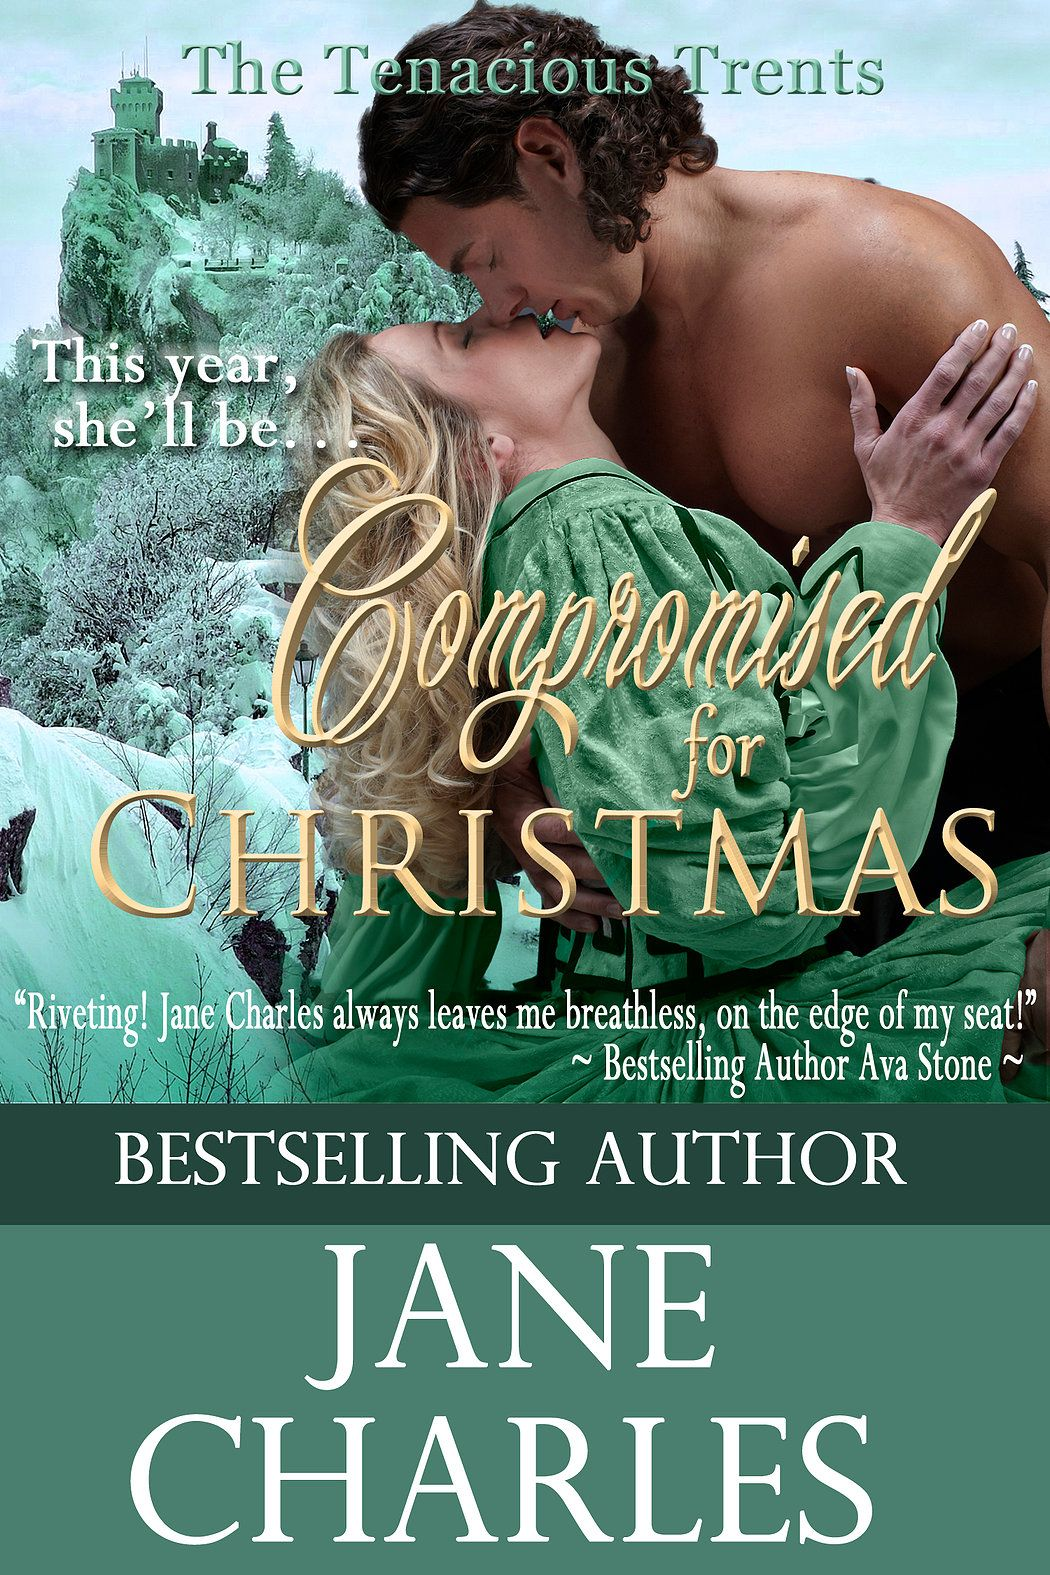 Jane Charles - Compromised for Christmas / #awordfromJoJo #HistoricalRomance #JaneCharles